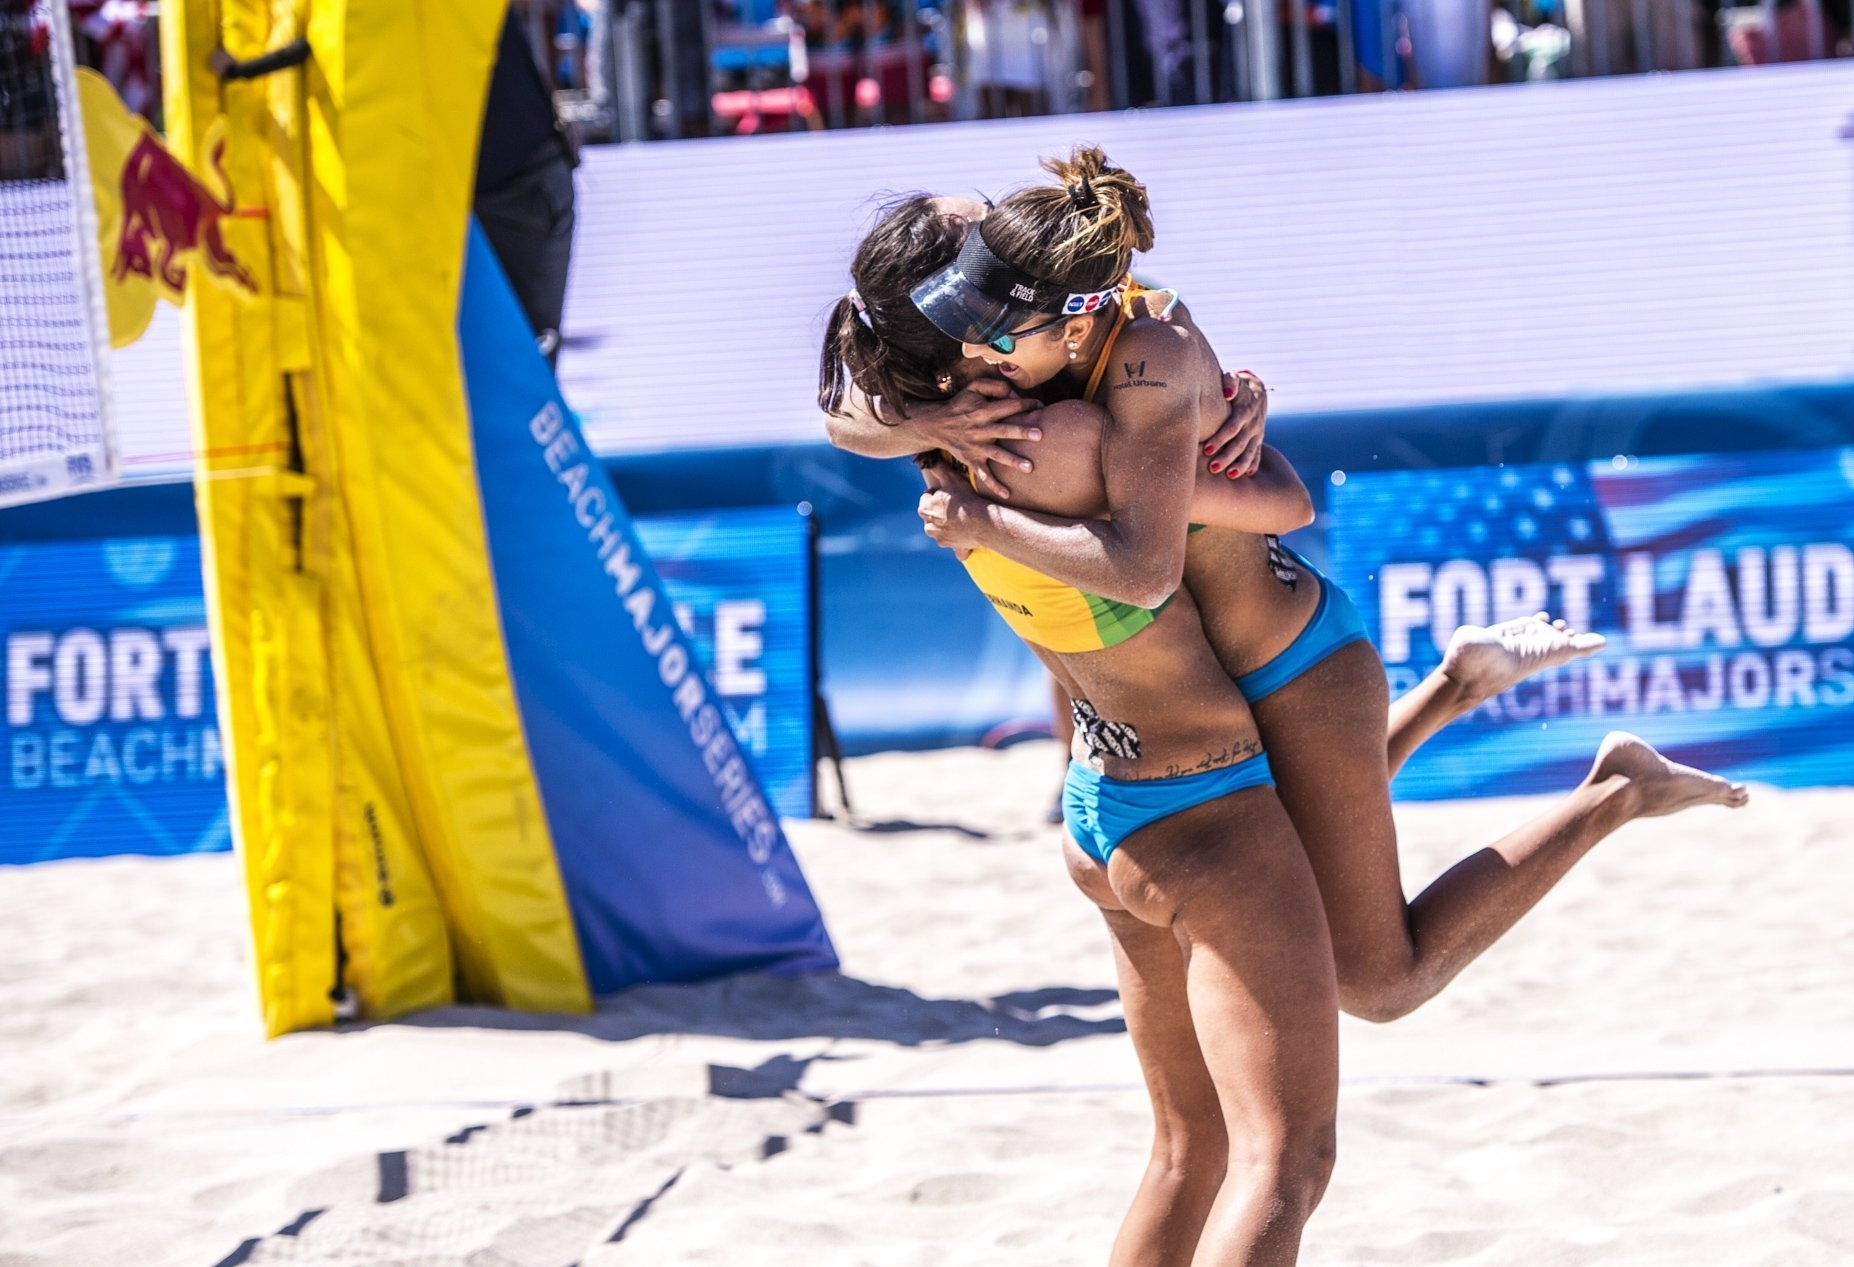 Barbara/Fernanda celebrate their first Beach Major Series title together